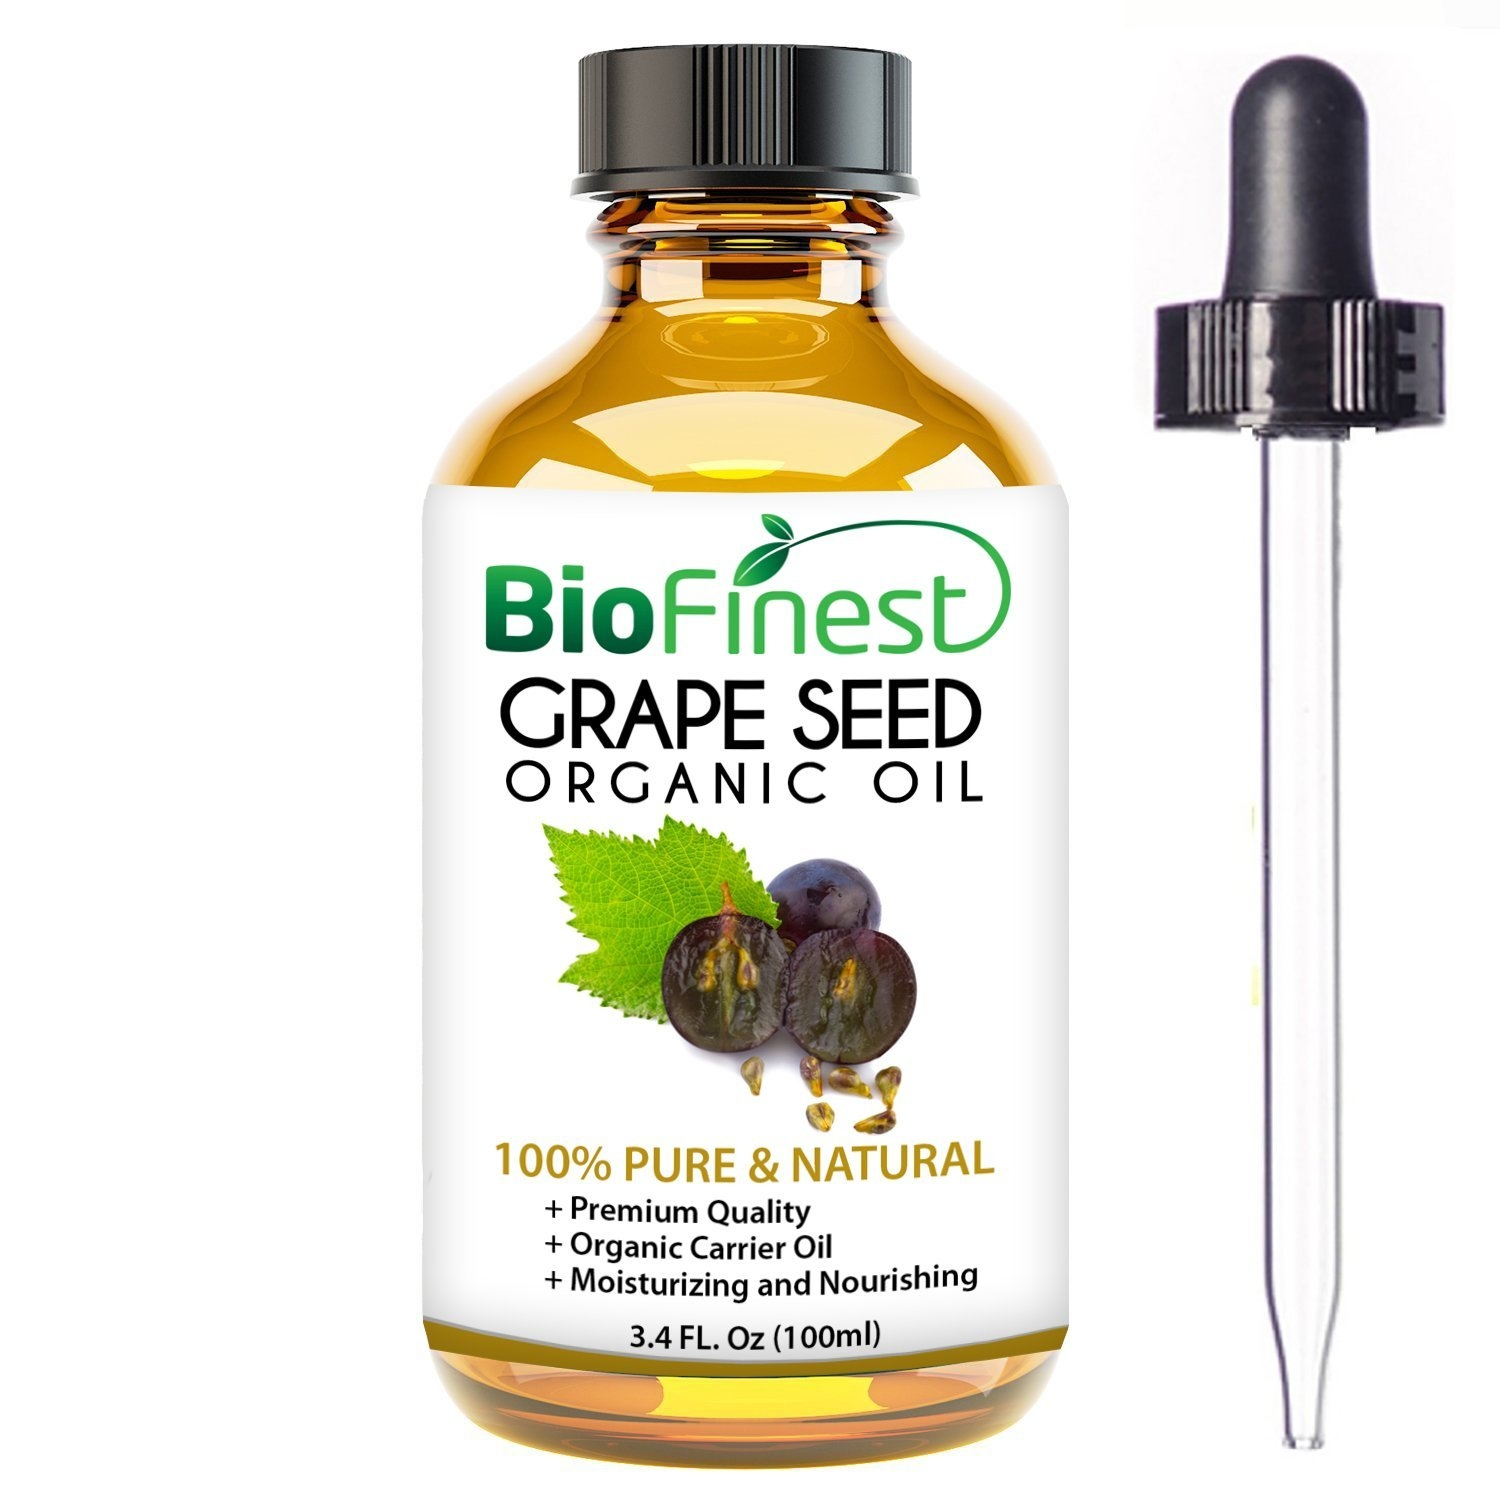 BioFinest Grape Seed Organic Oil for Hair, Face & Skin - 100% Pure, Natural, Cold Pressed - Certified Organic - Anti-Aging, Anti-Oxidant moisturizer - FREE E-Book and Dropper (100ml)